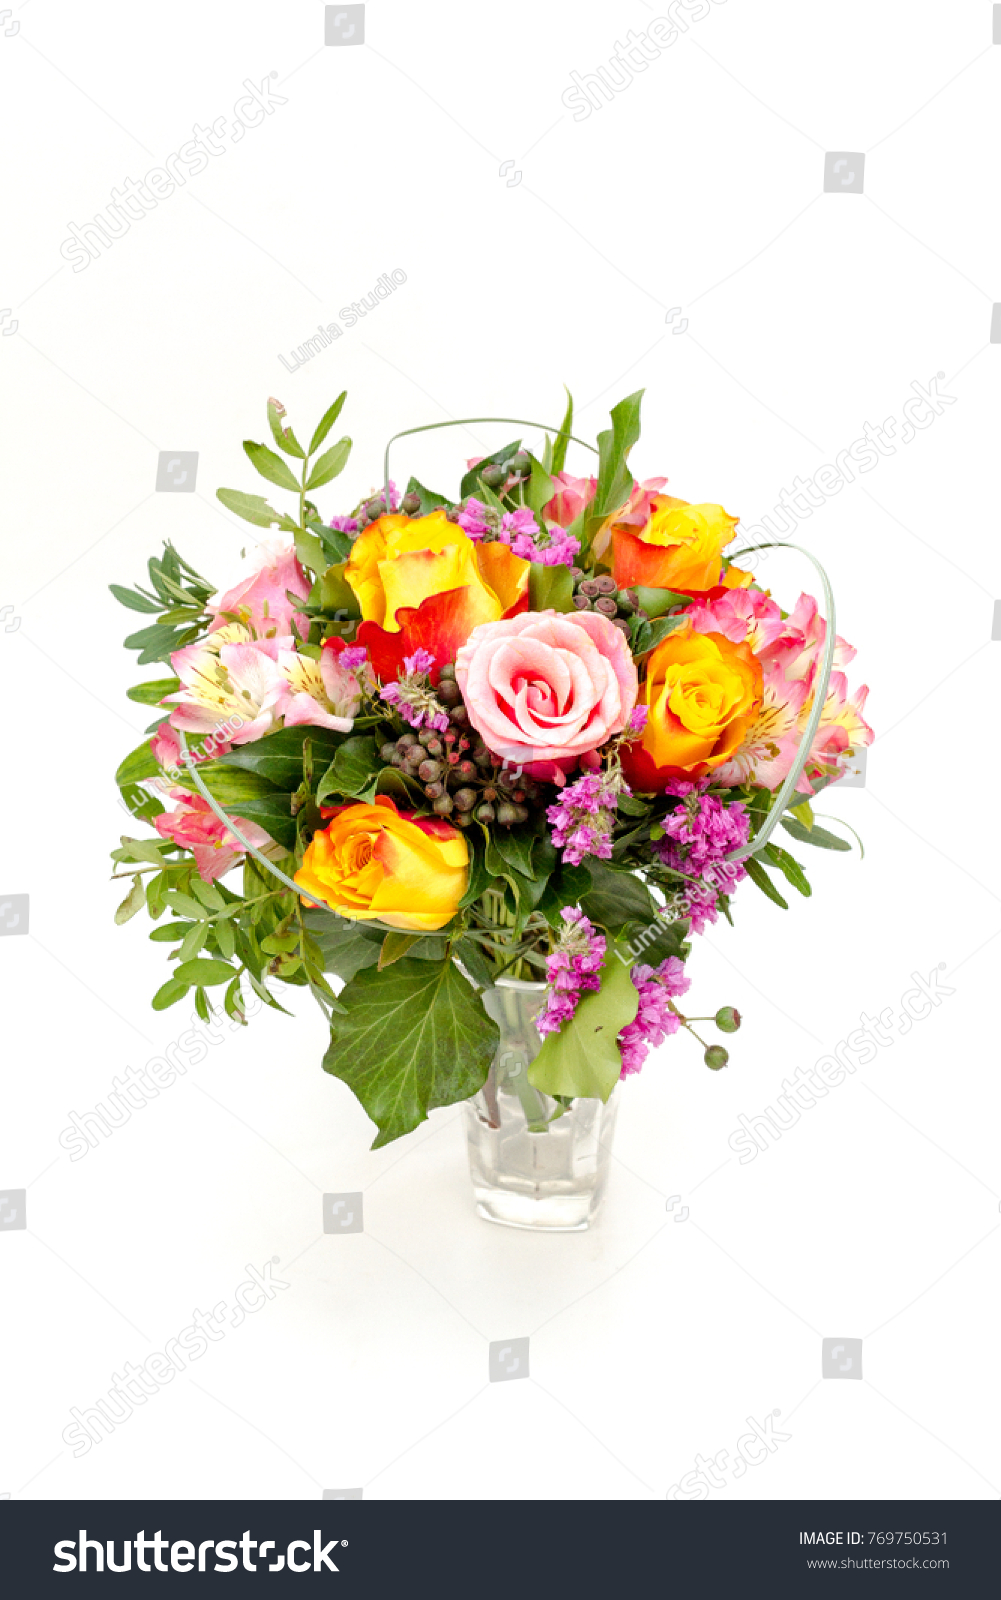 Wedding Bouquet Made Of Pink Orange Purple Roses And Flowers